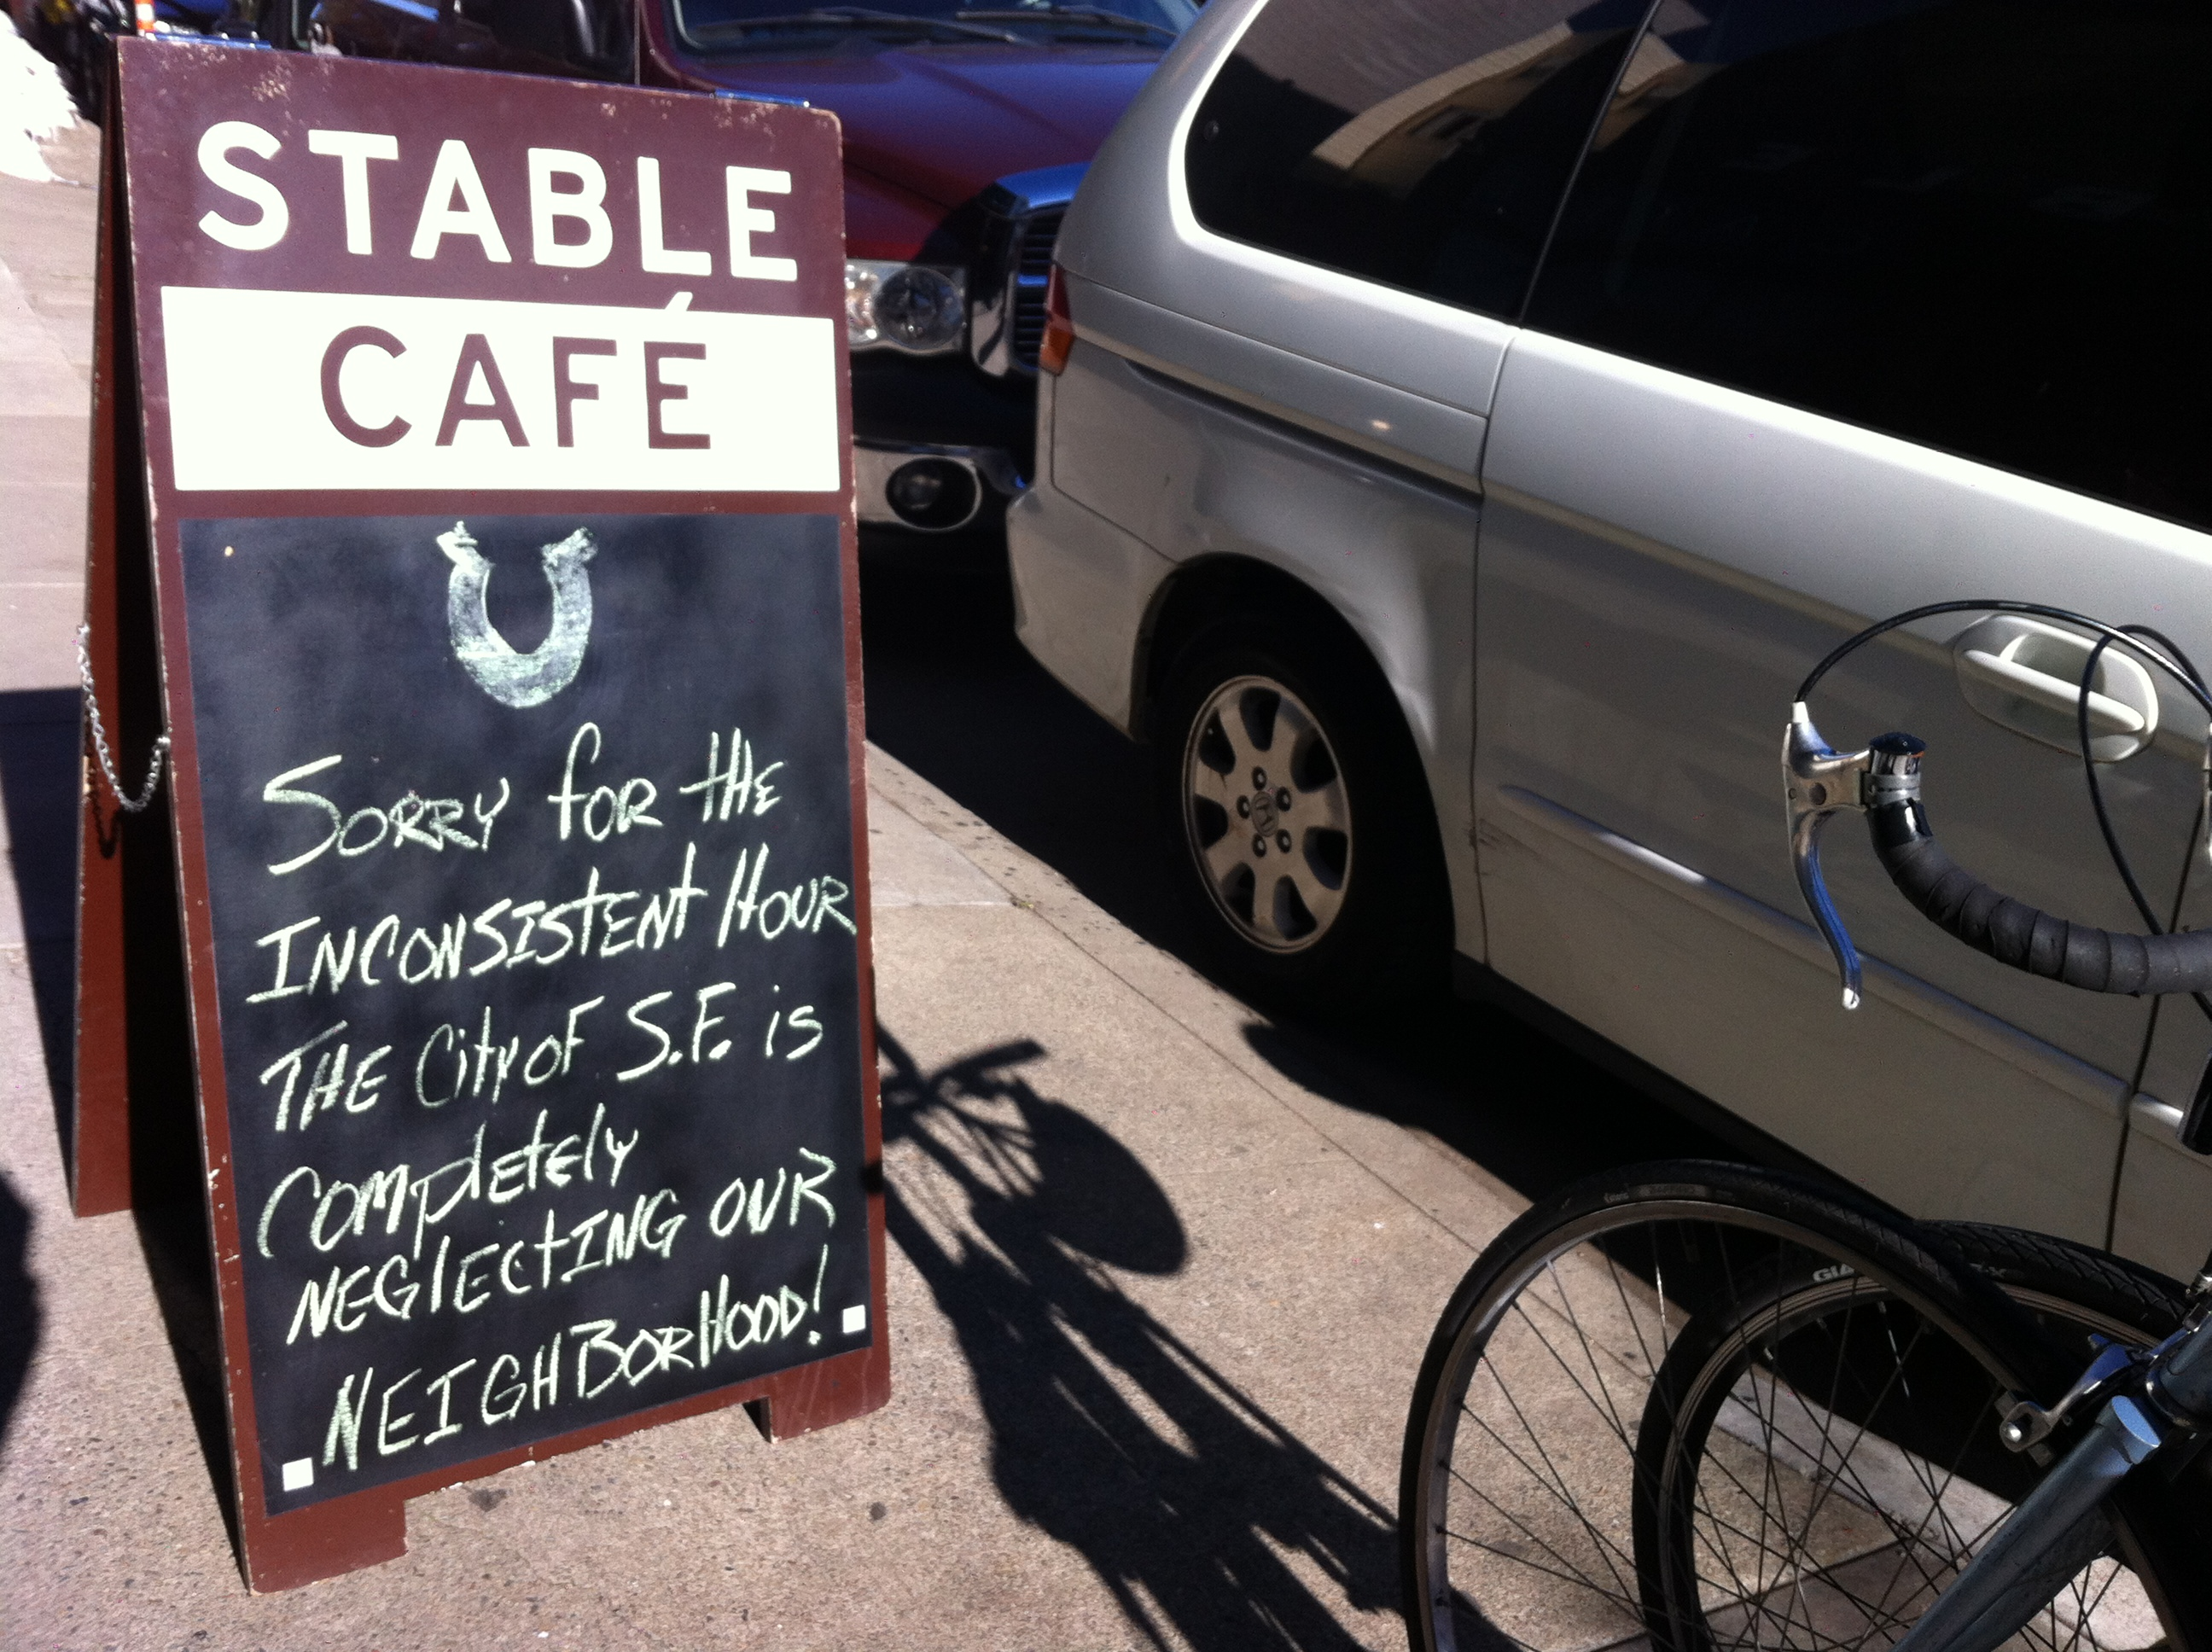 Stable Café Forced to Keep Irregular Hours Due to Repairs